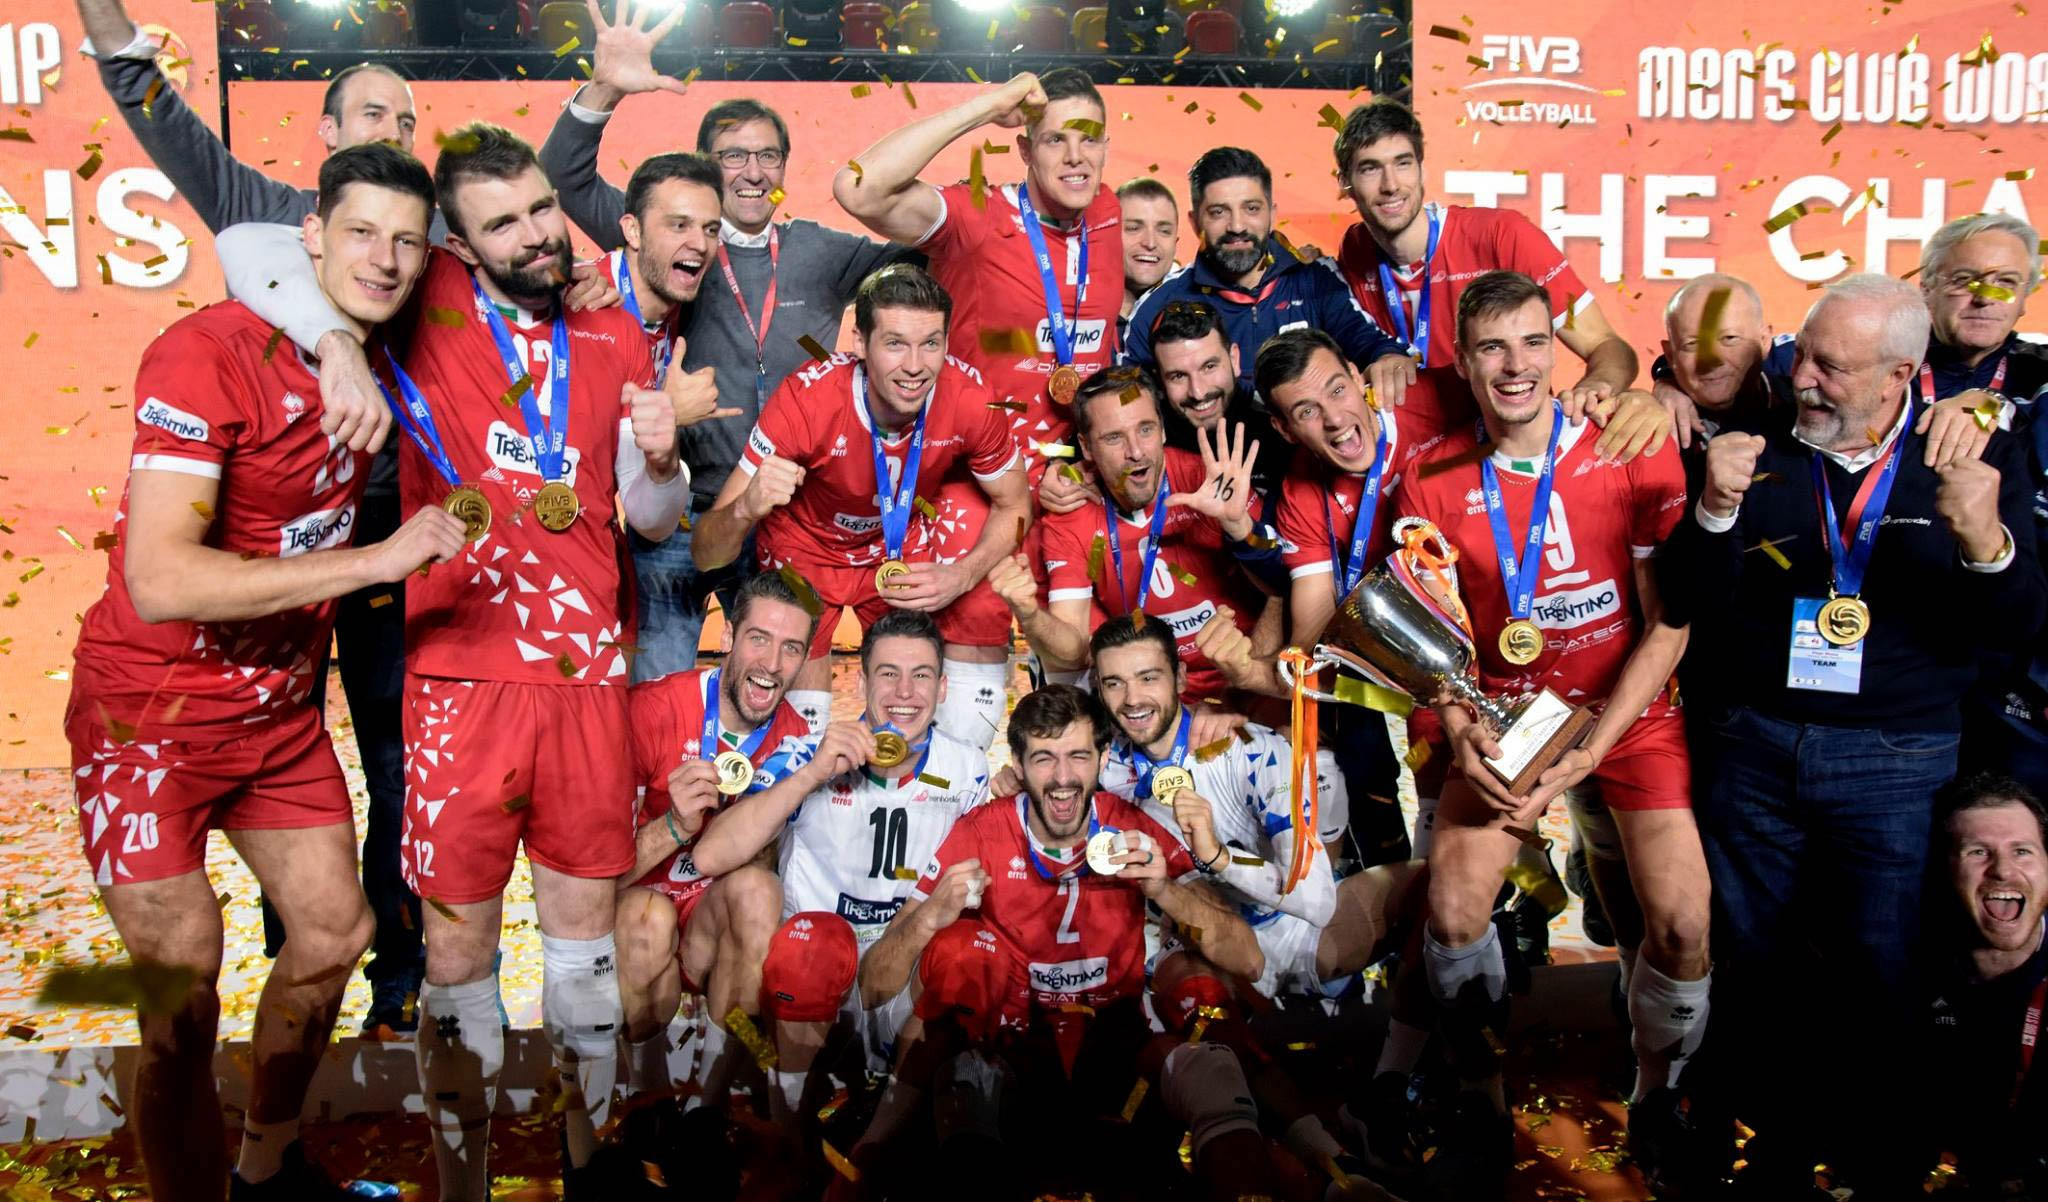 World Champions! Trentino Volley triumphant at the 2018 Club World Championship!